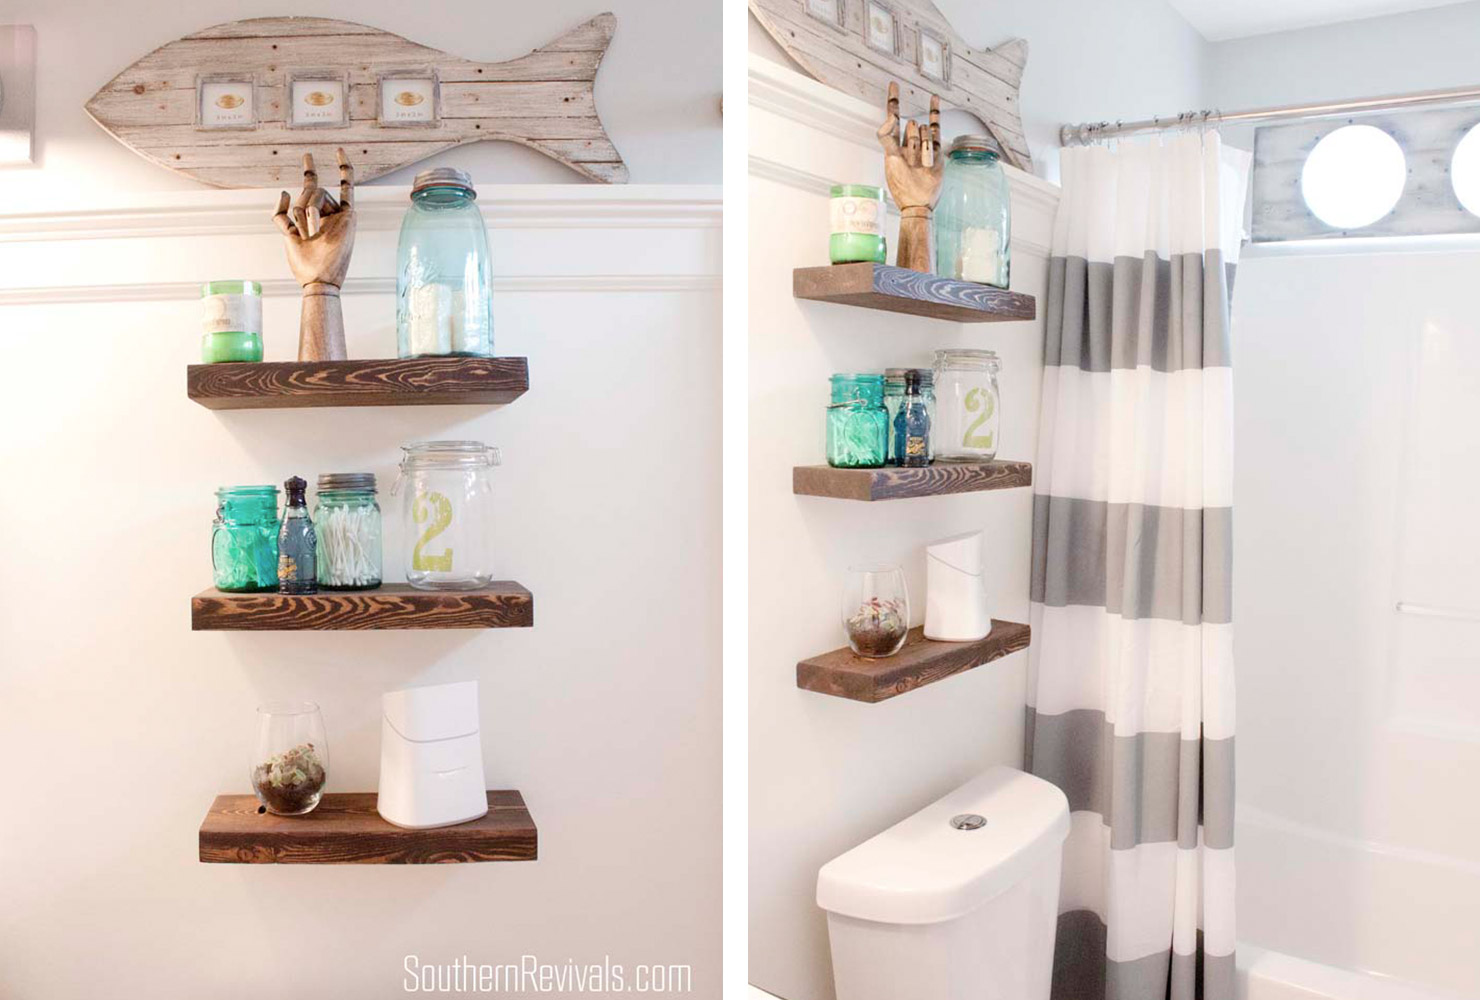 Bathroom Decoration Idea by Southern Revivals - Shutterfly